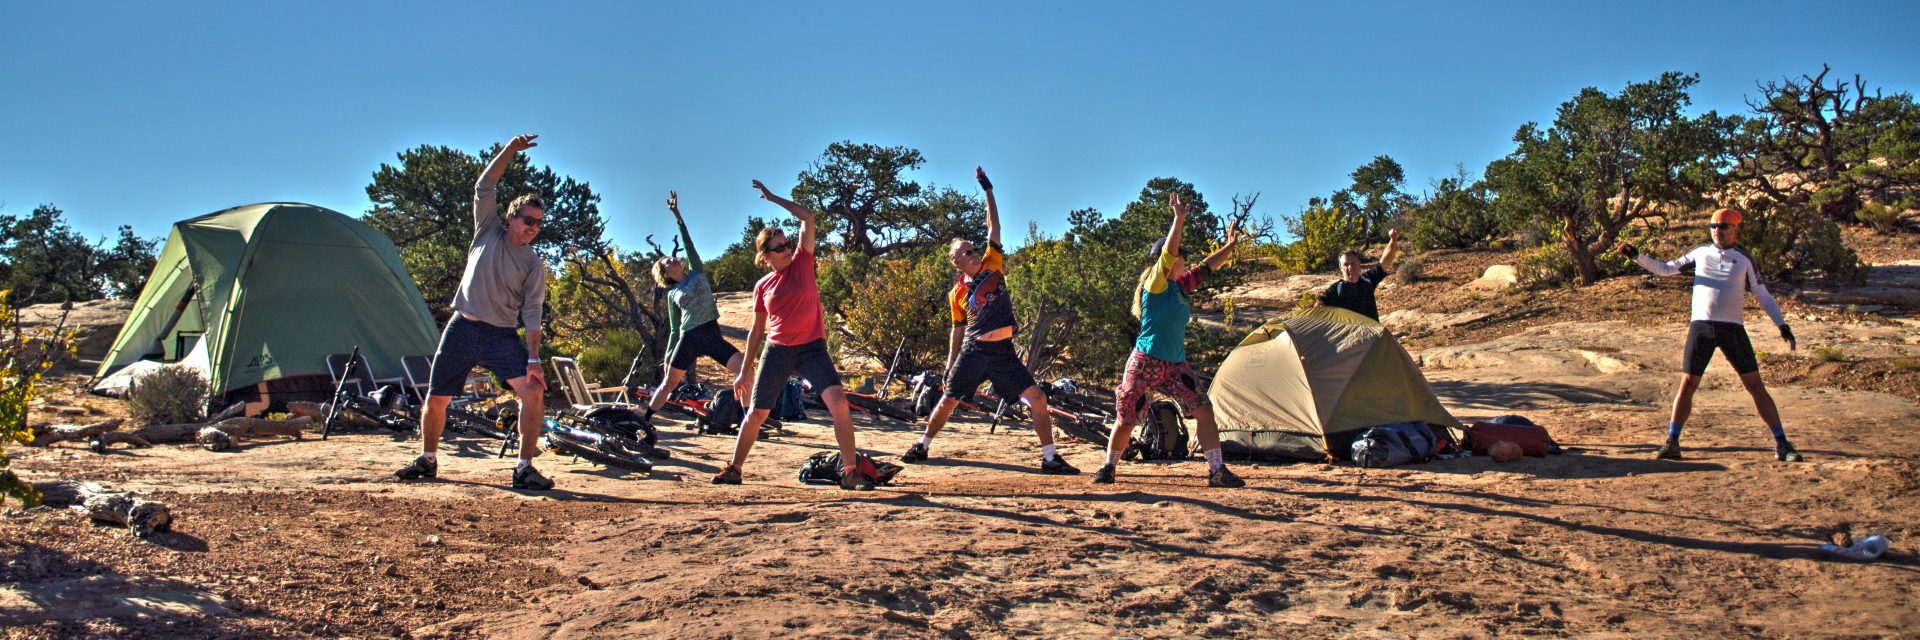 A guide leads riders in yoga stretches each morning prior to the day's ride - Teapot Rock Campground, Canyonlands National Park